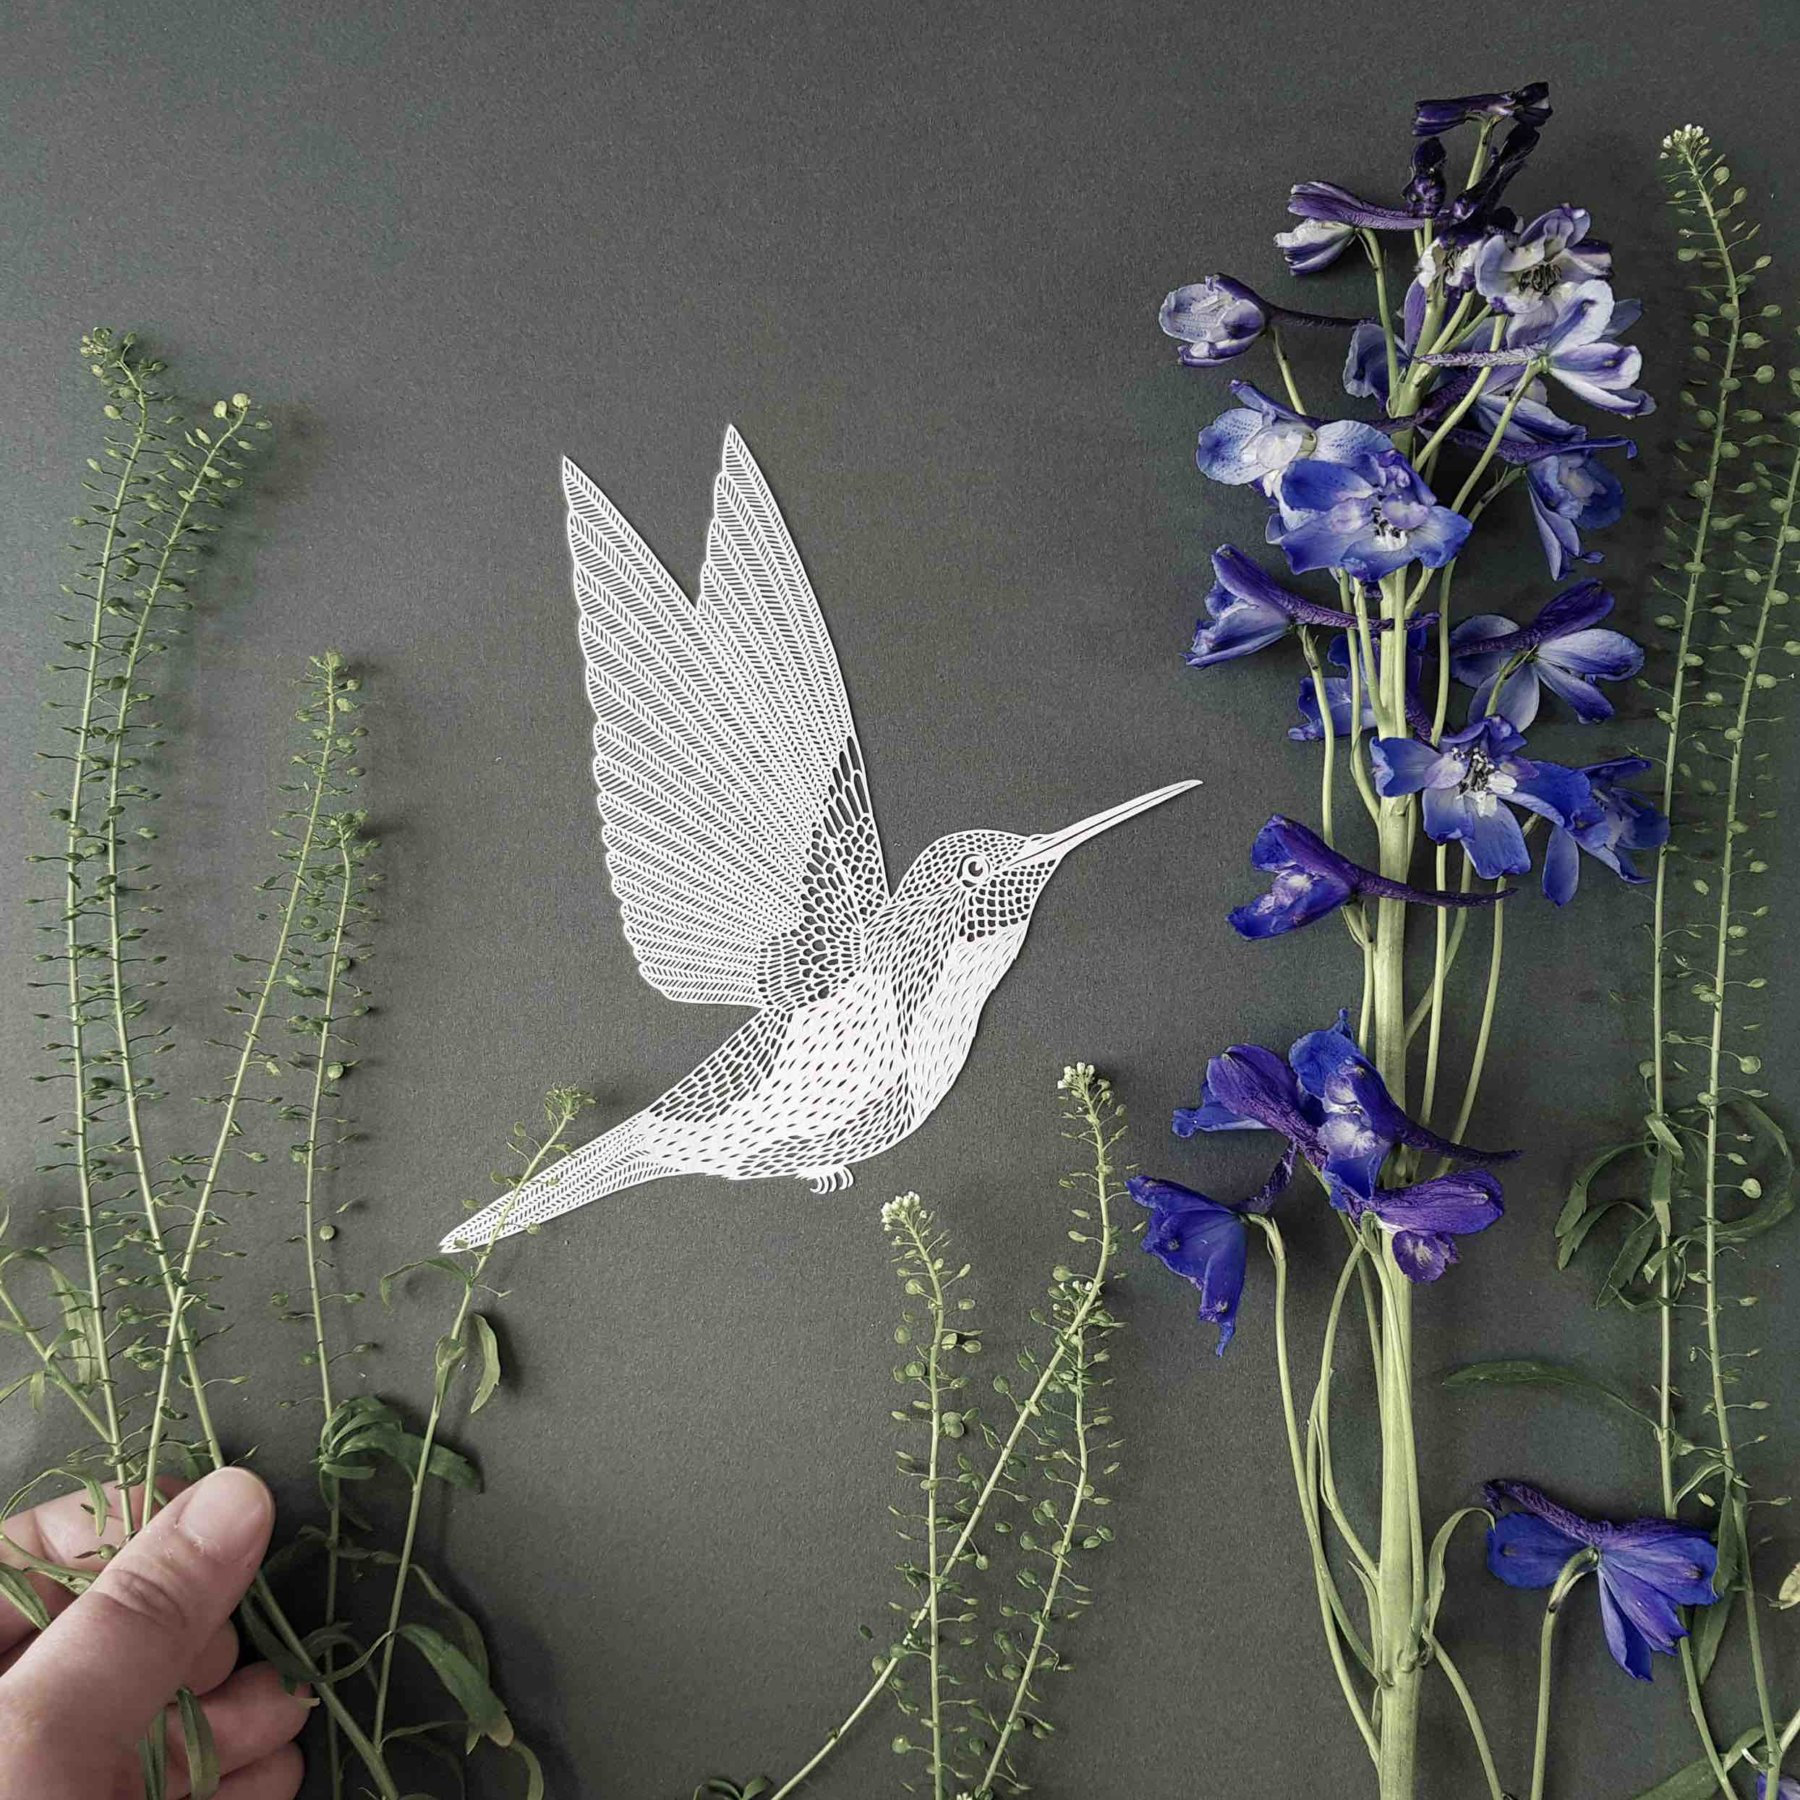 Impression_Originale_itw_Pippa_hummingbird photo prep